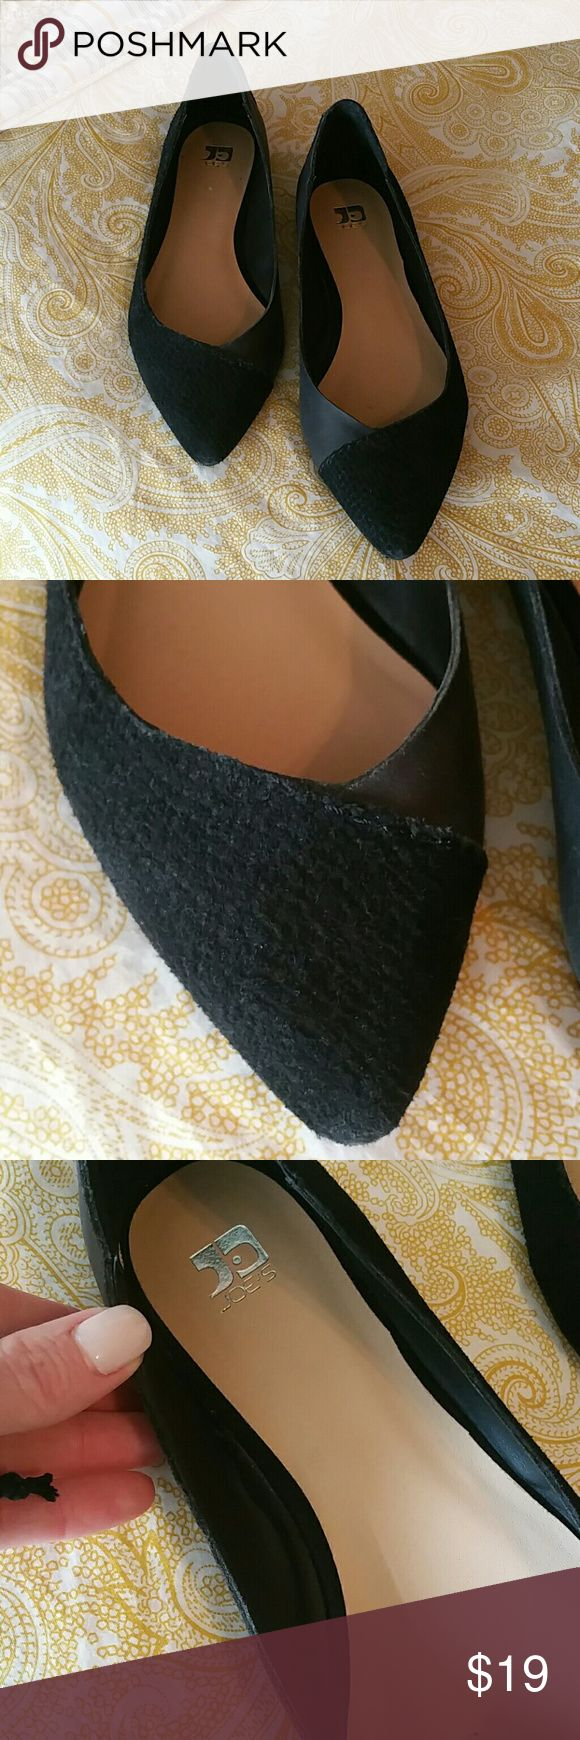 JOE's JEANS super cute black leather flats size 8 Smooth and suede leather mixed to create a unique comphy flat.  Great condition, wear with skinnys cuffed or office attire, u will love these Joe's Jeans Shoes Flats & Loafers